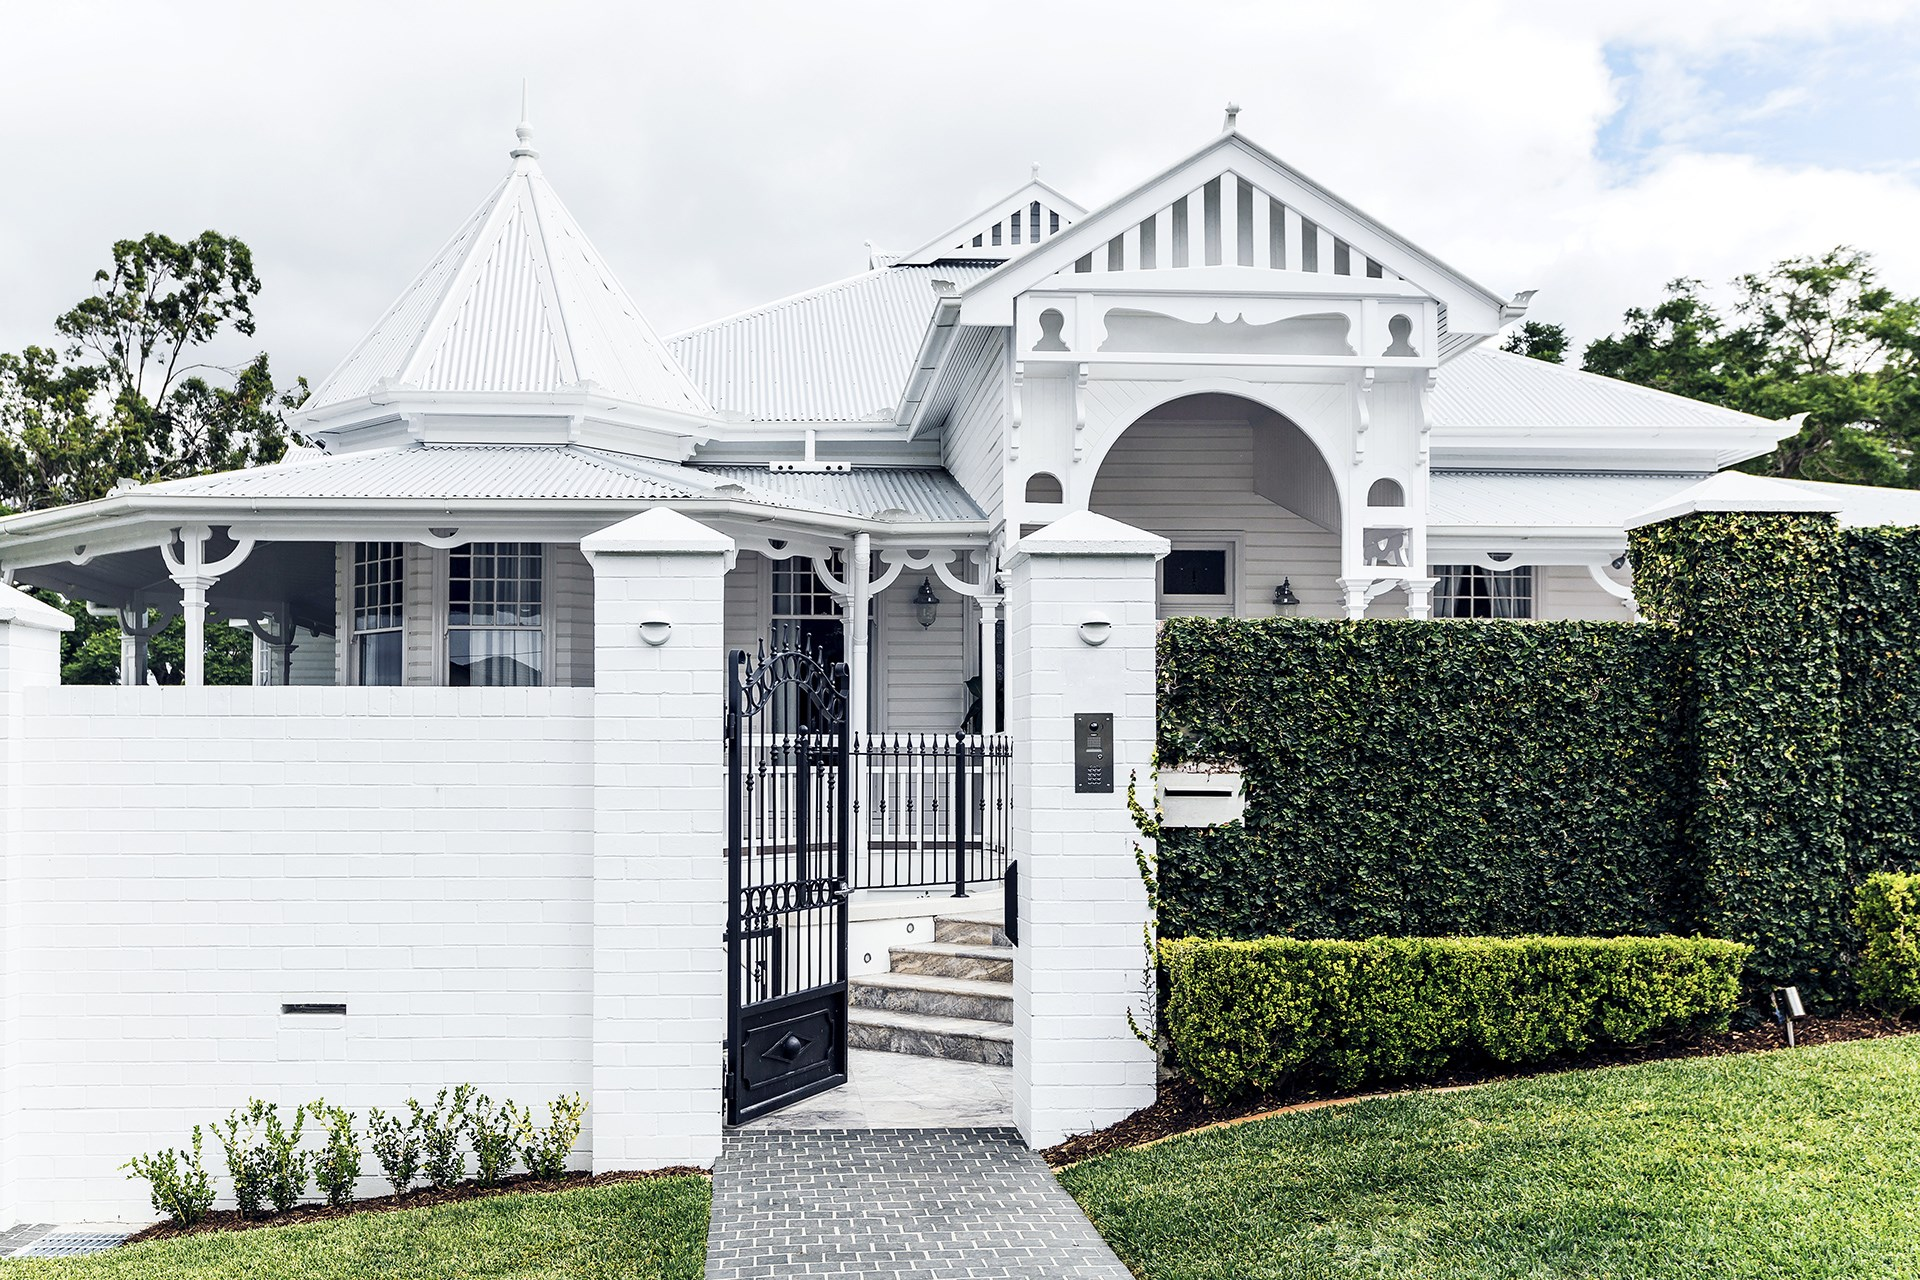 This [grand Queenslander in Brisbane](http://www.homestolove.com.au/classic-queenslander-updated-for-family-living-2577) has been extended to include a two-level rear extension with new living areas, bedrooms, an office and gym. Photo: Maree Homer